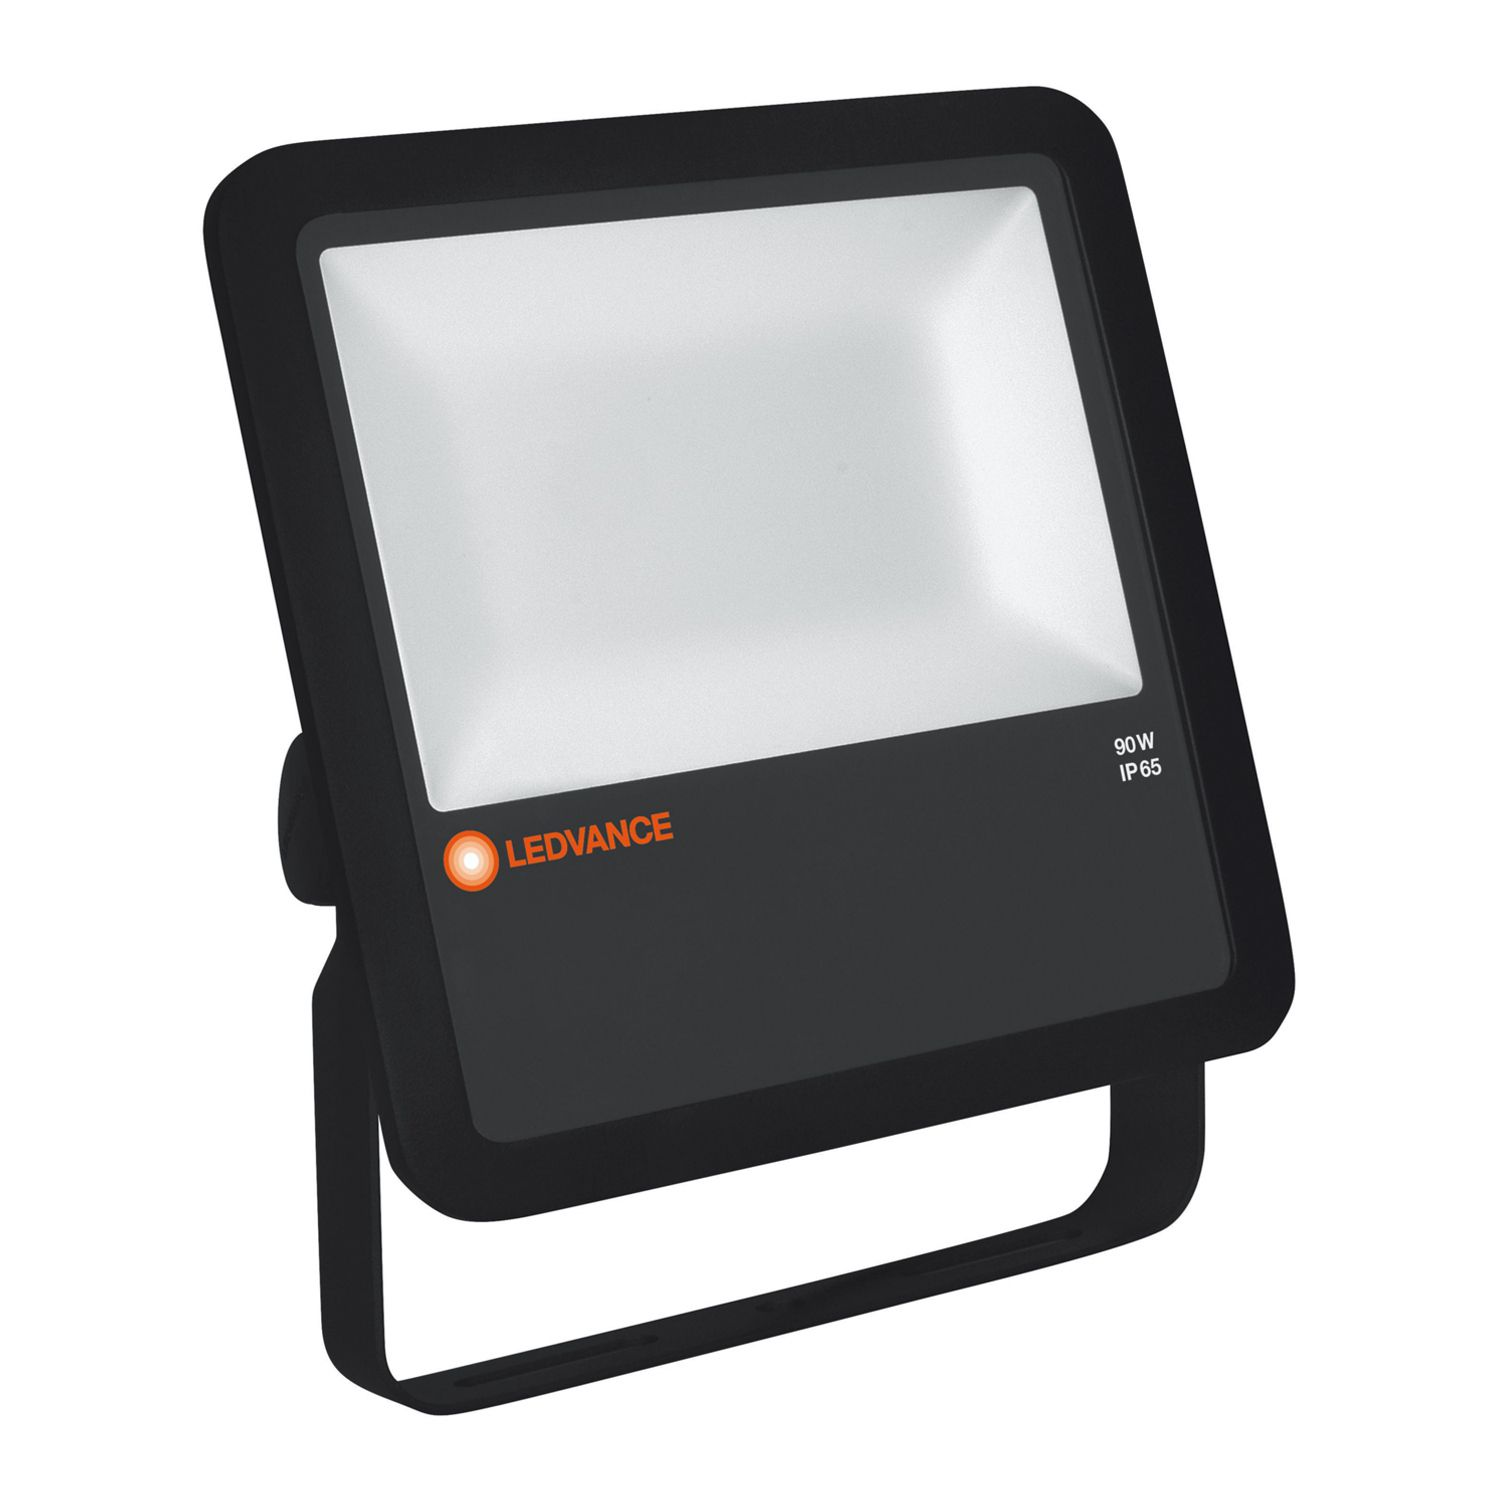 LEDVANCE LED Floodlight 90W 4000K 10000lm IP65 Black | With Sensor